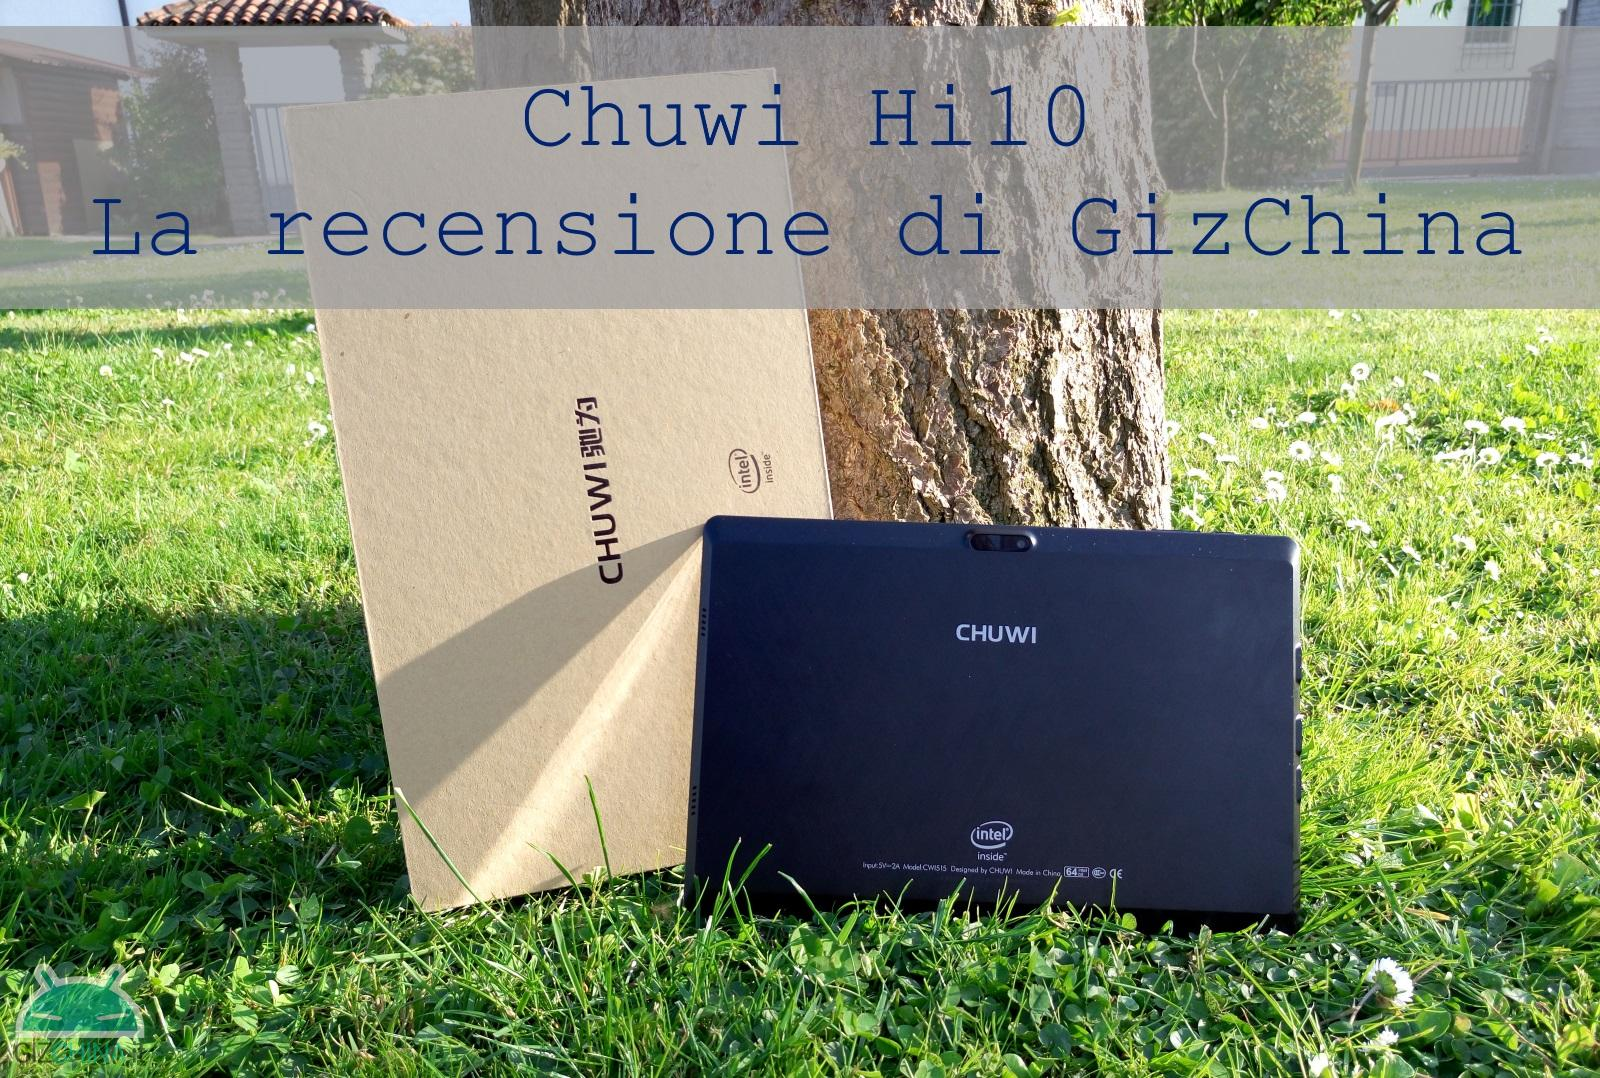 Chuwi-Hi10-Cover.jpg?fit=1600%2C1078